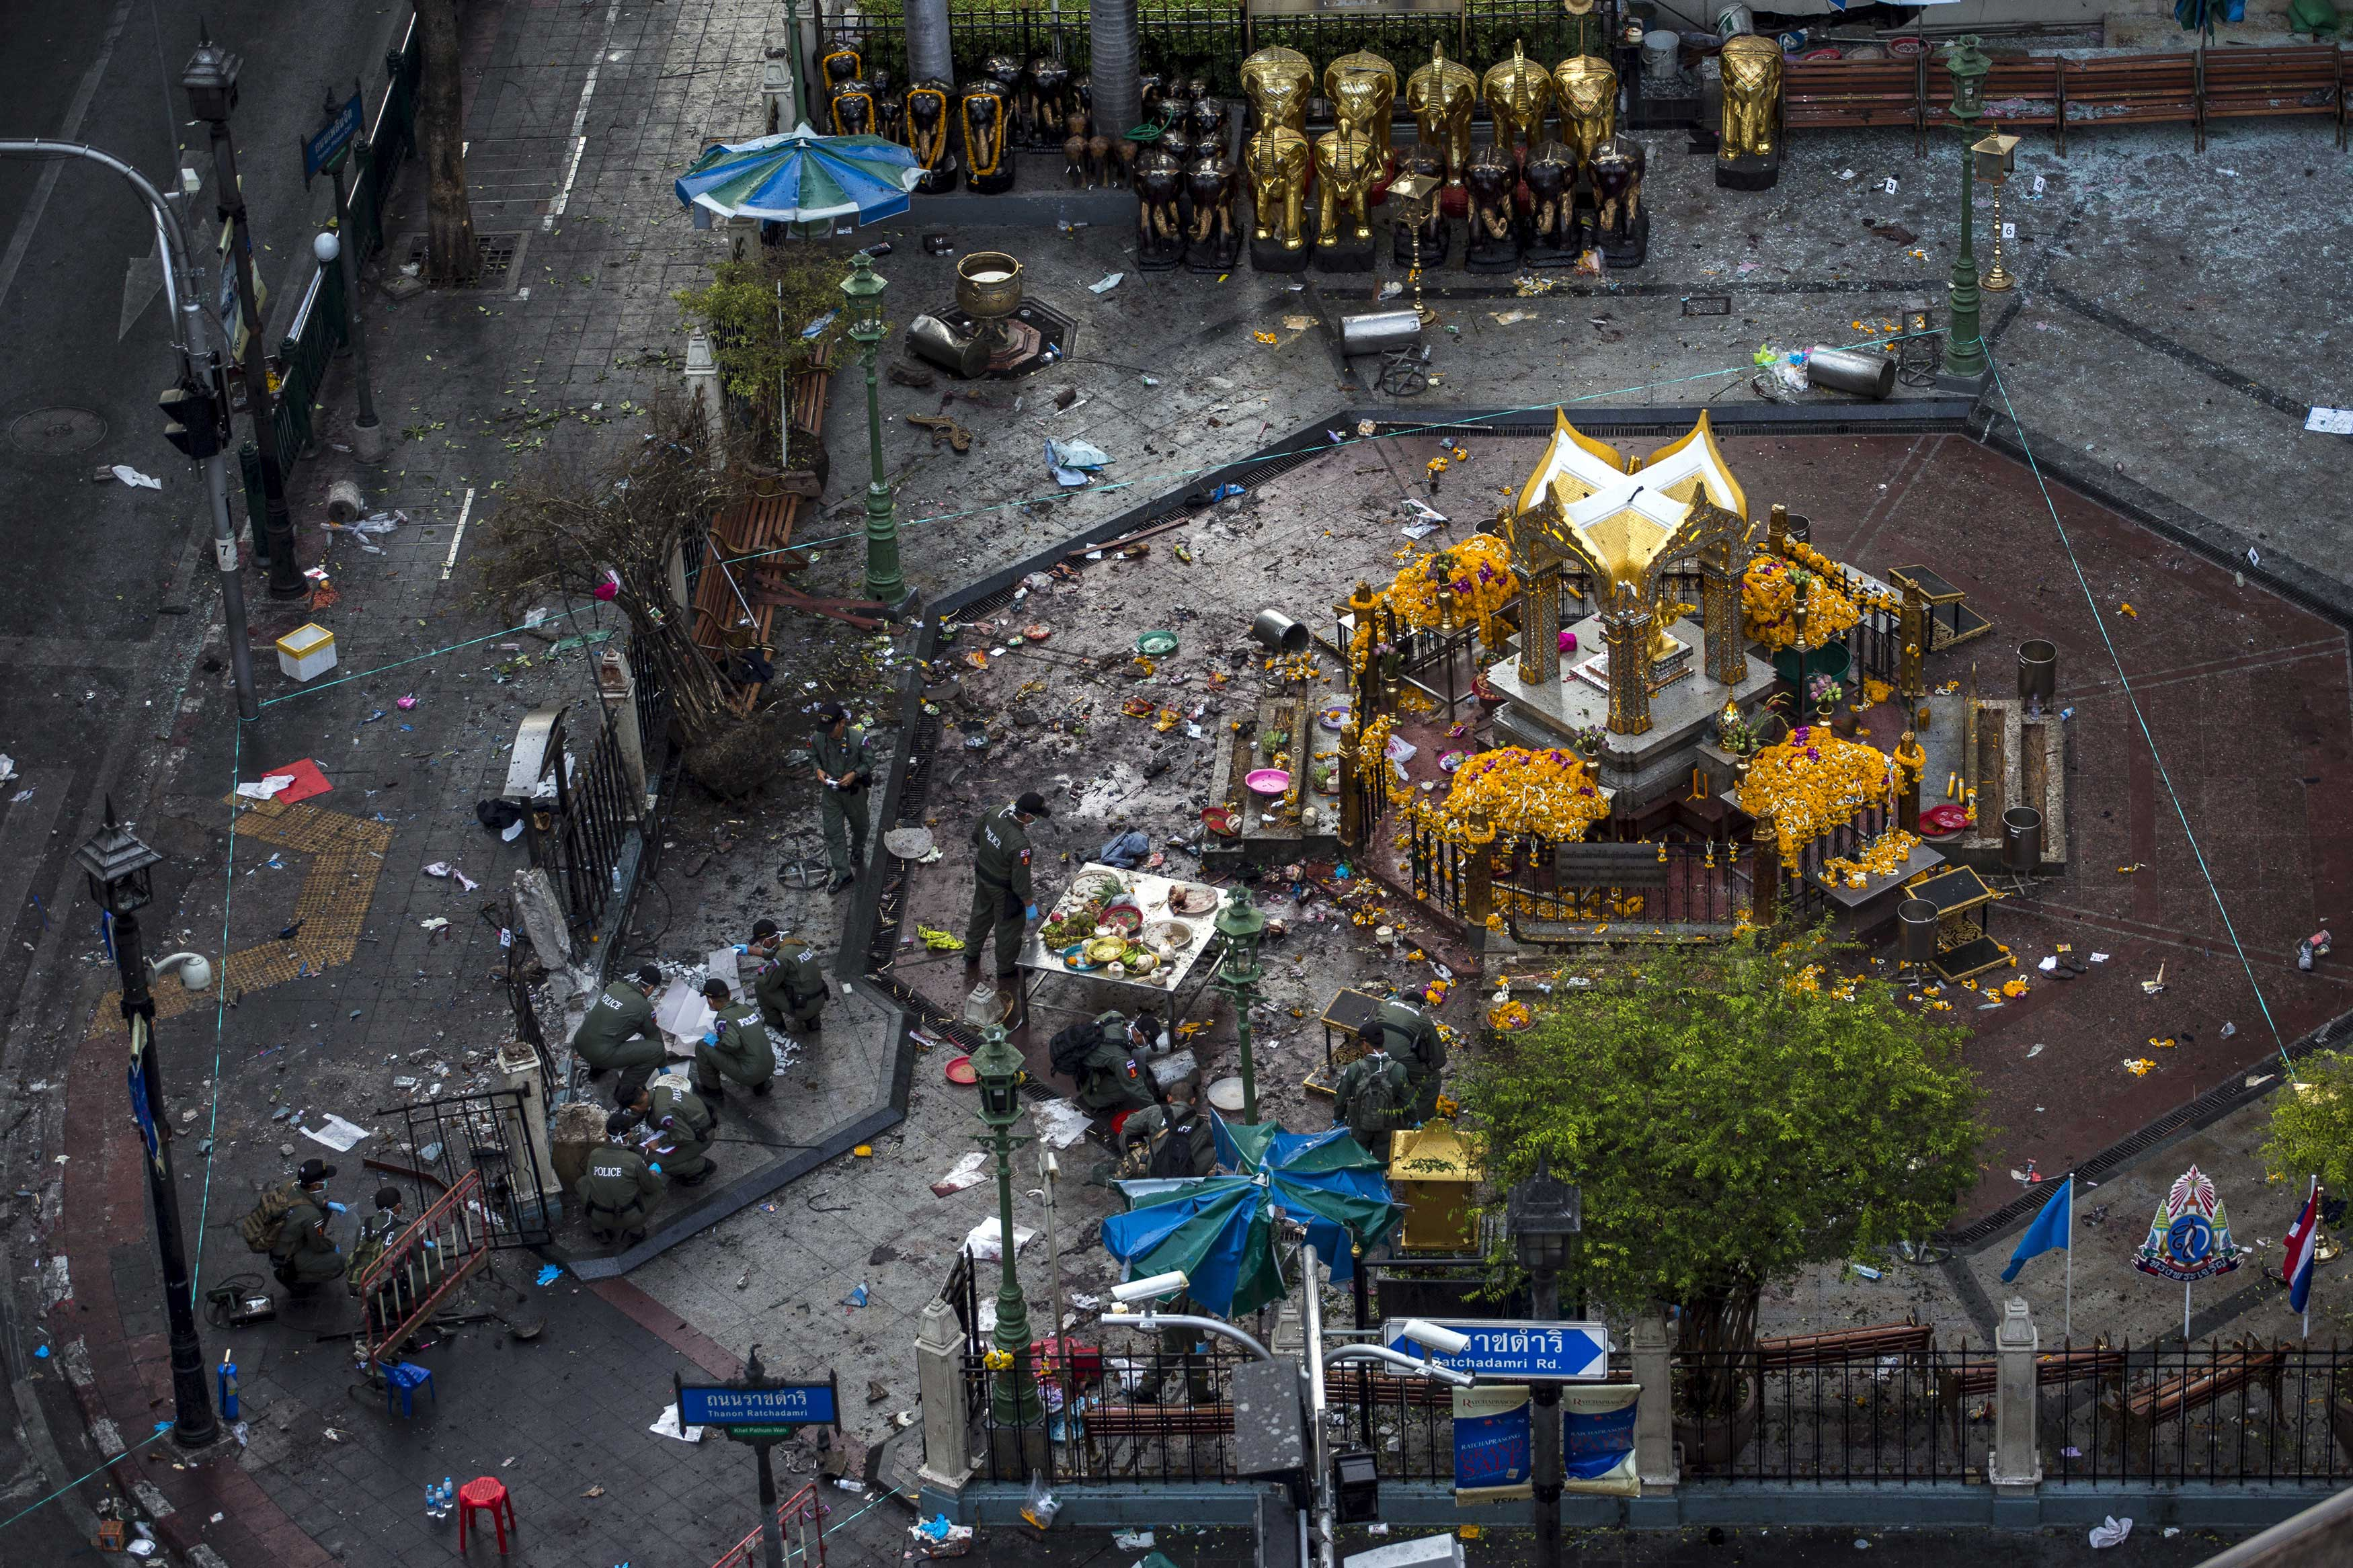 Experts investigate the Erawan shrine, the site of a deadly blast in central Bangkok